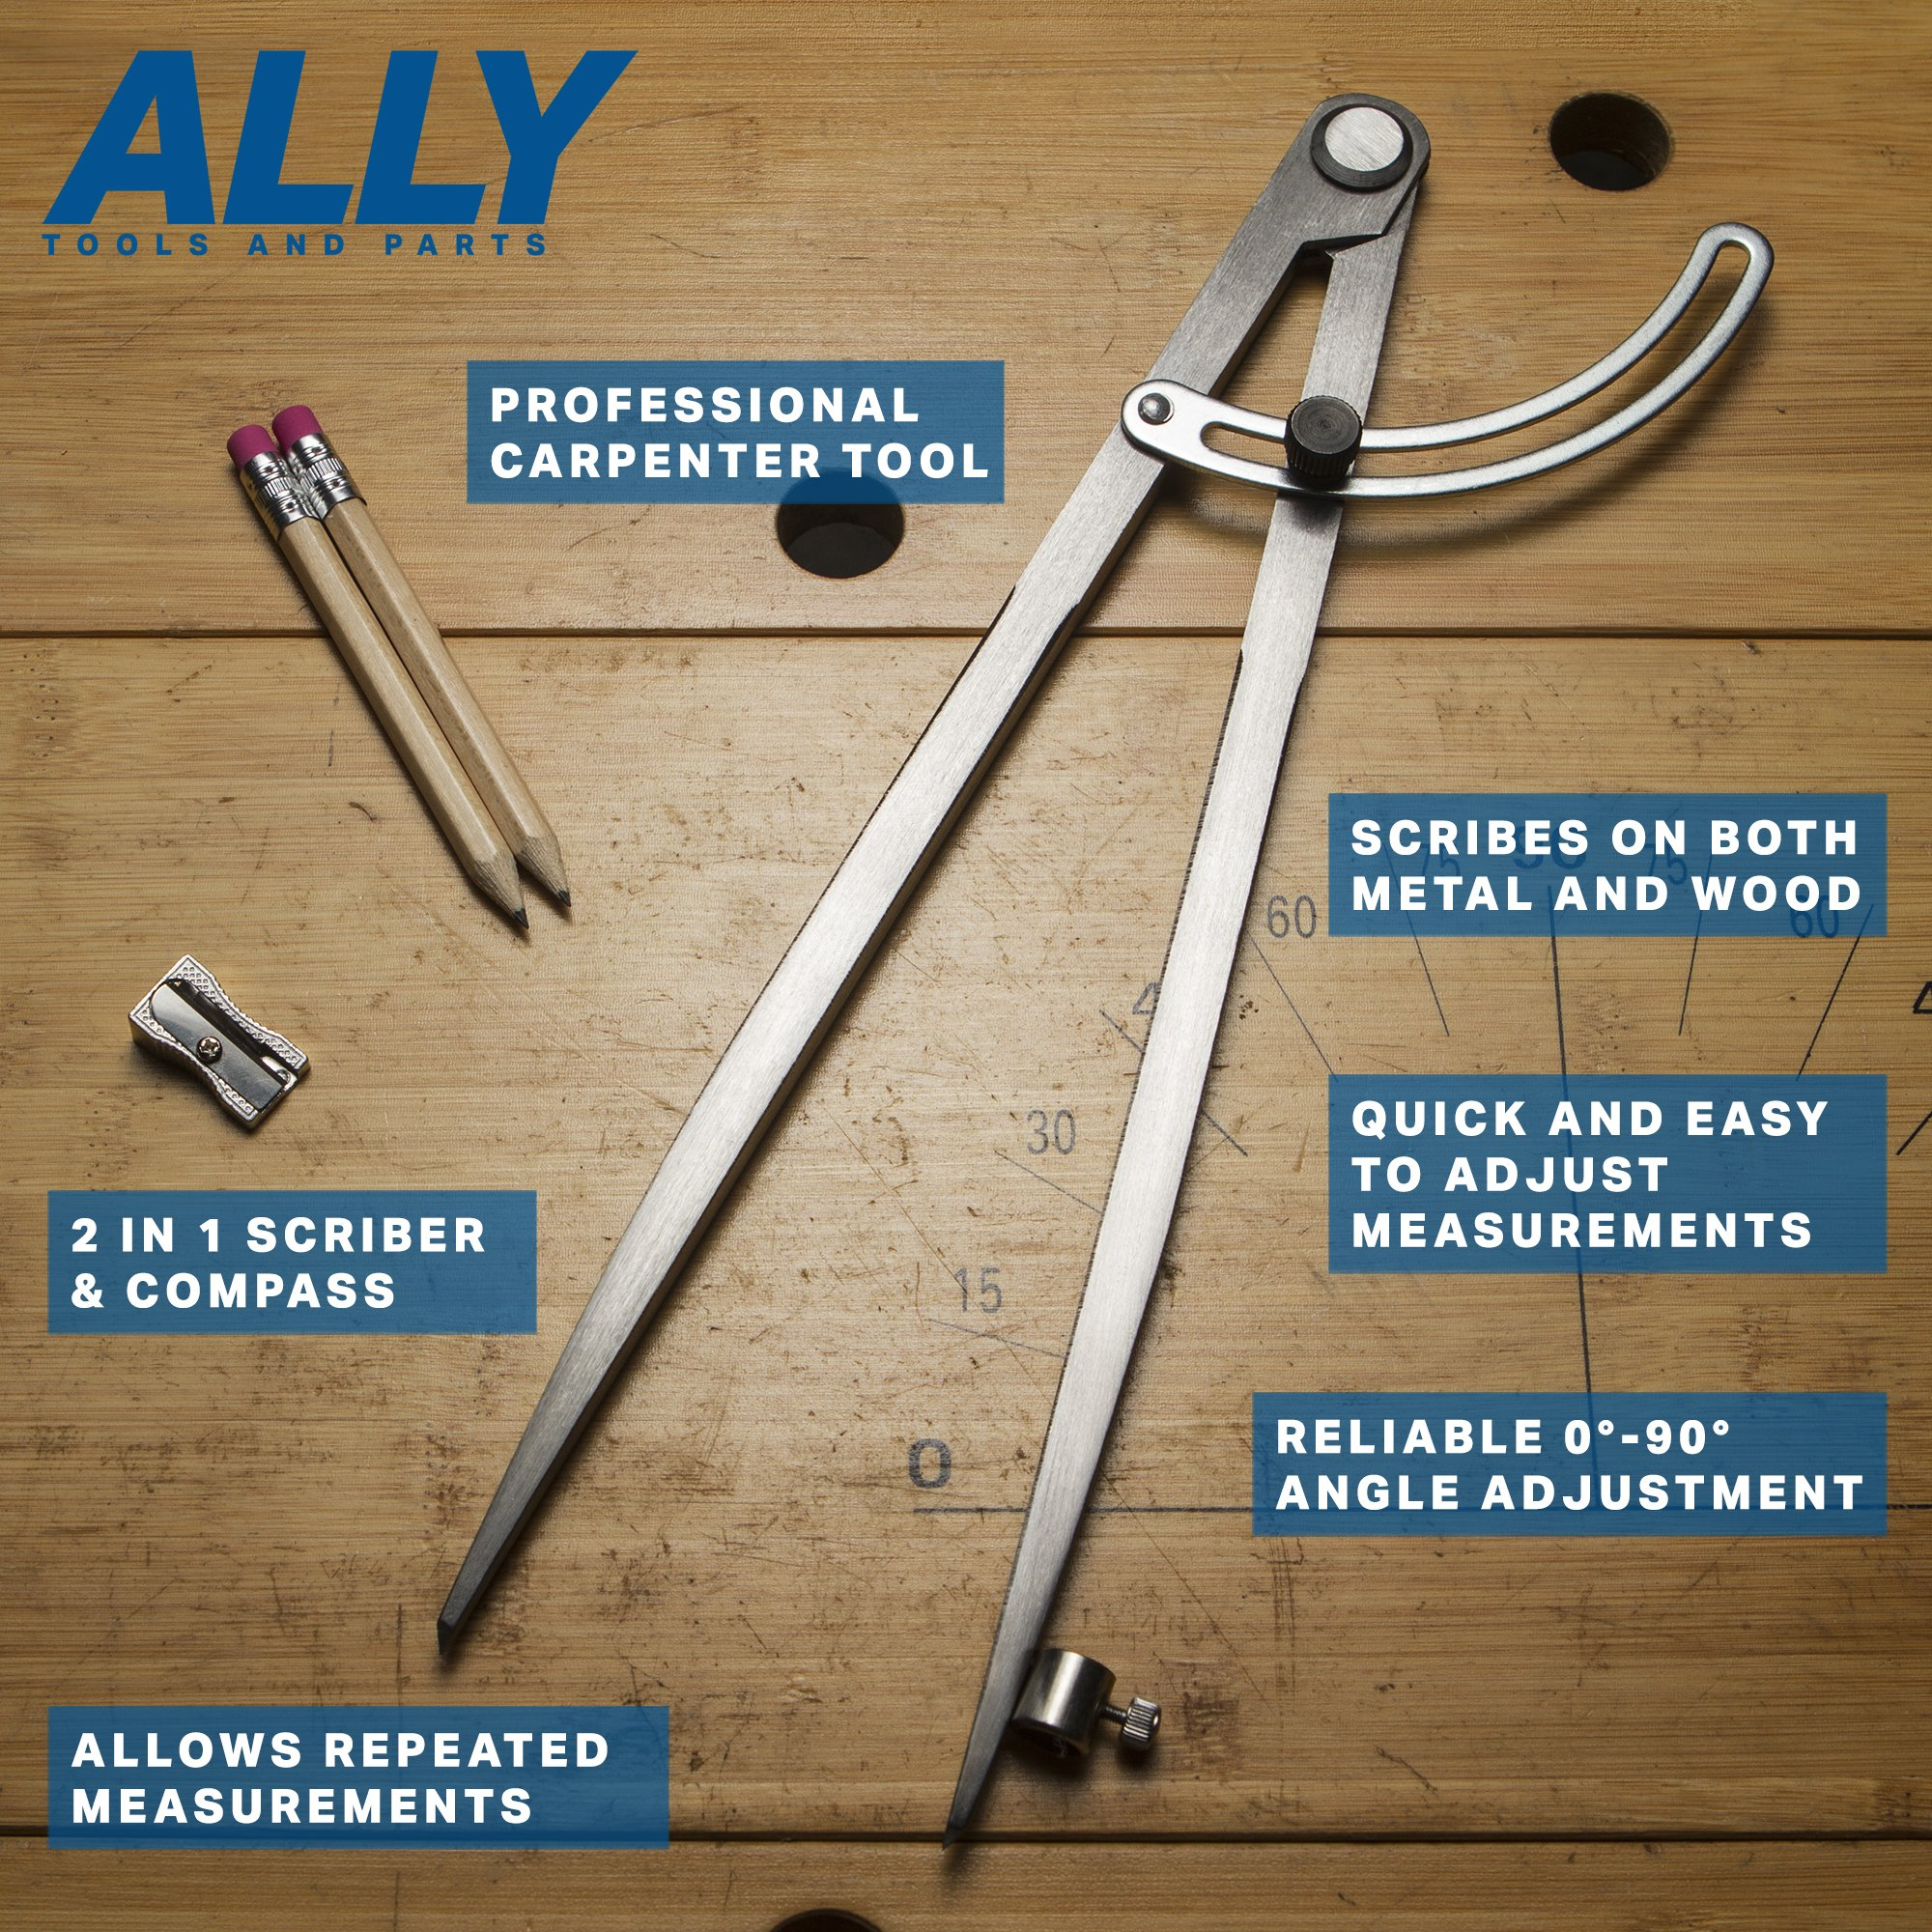 ALLY Tools 12'' Wing Divider Pencil Holder/Compass Scribe Kit INCLUDES Two Pencils and Metal Pencil Sharpener Ideal for Drawing Circles, Scribing Wood, Scribing Metal, Drafting, and Map Plotting by ALLY Tools and Parts (Image #4)